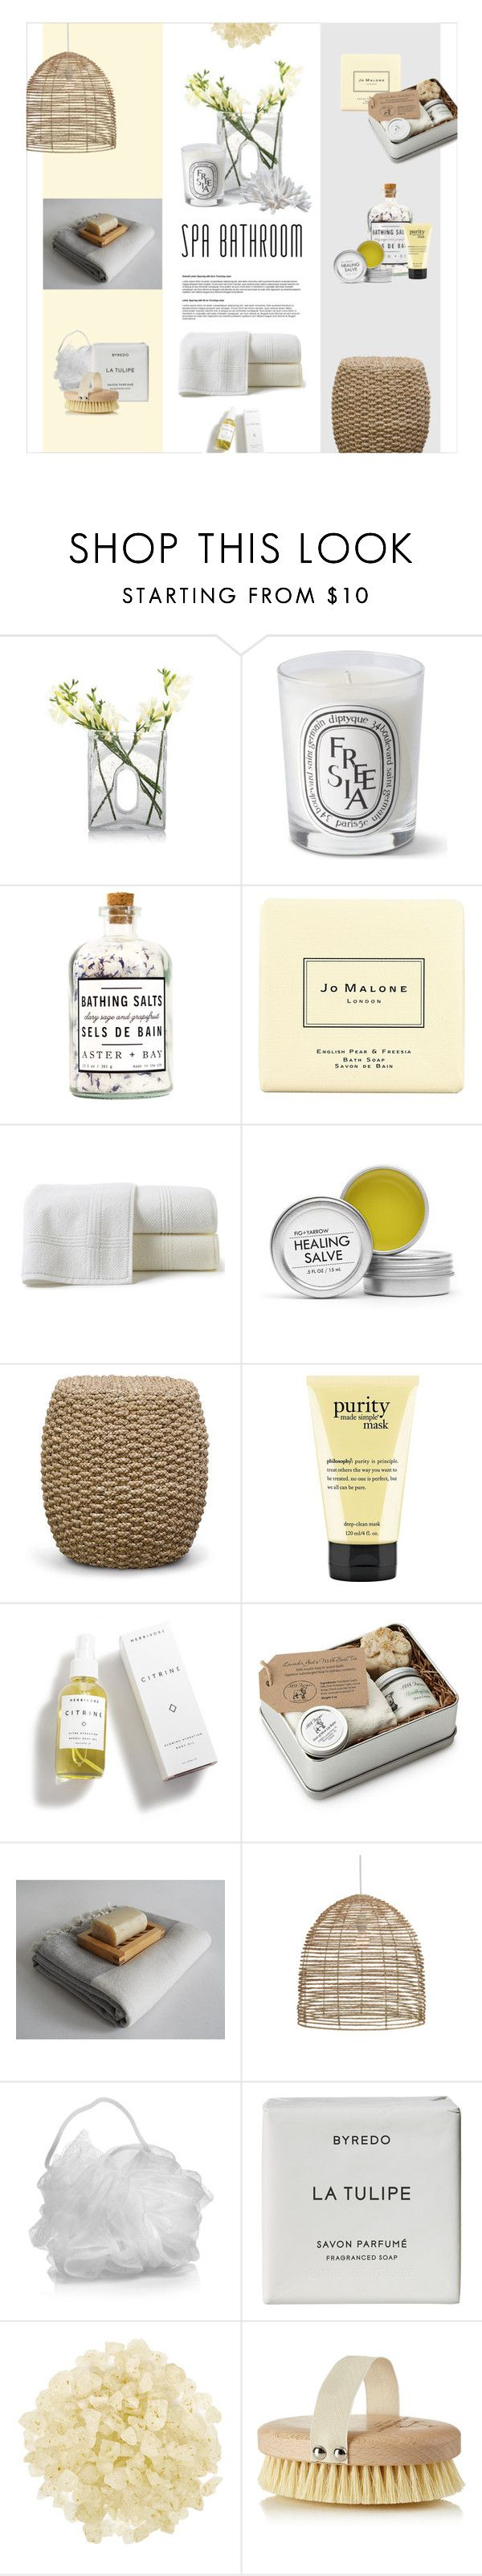 """""""Spring Spa"""" by magdafunk ❤ liked on Polyvore featuring interior, interiors, interior design, home, home decor, interior decorating, Diptyque, Jo Malone, Peacock Alley and Fig+Yarrow"""